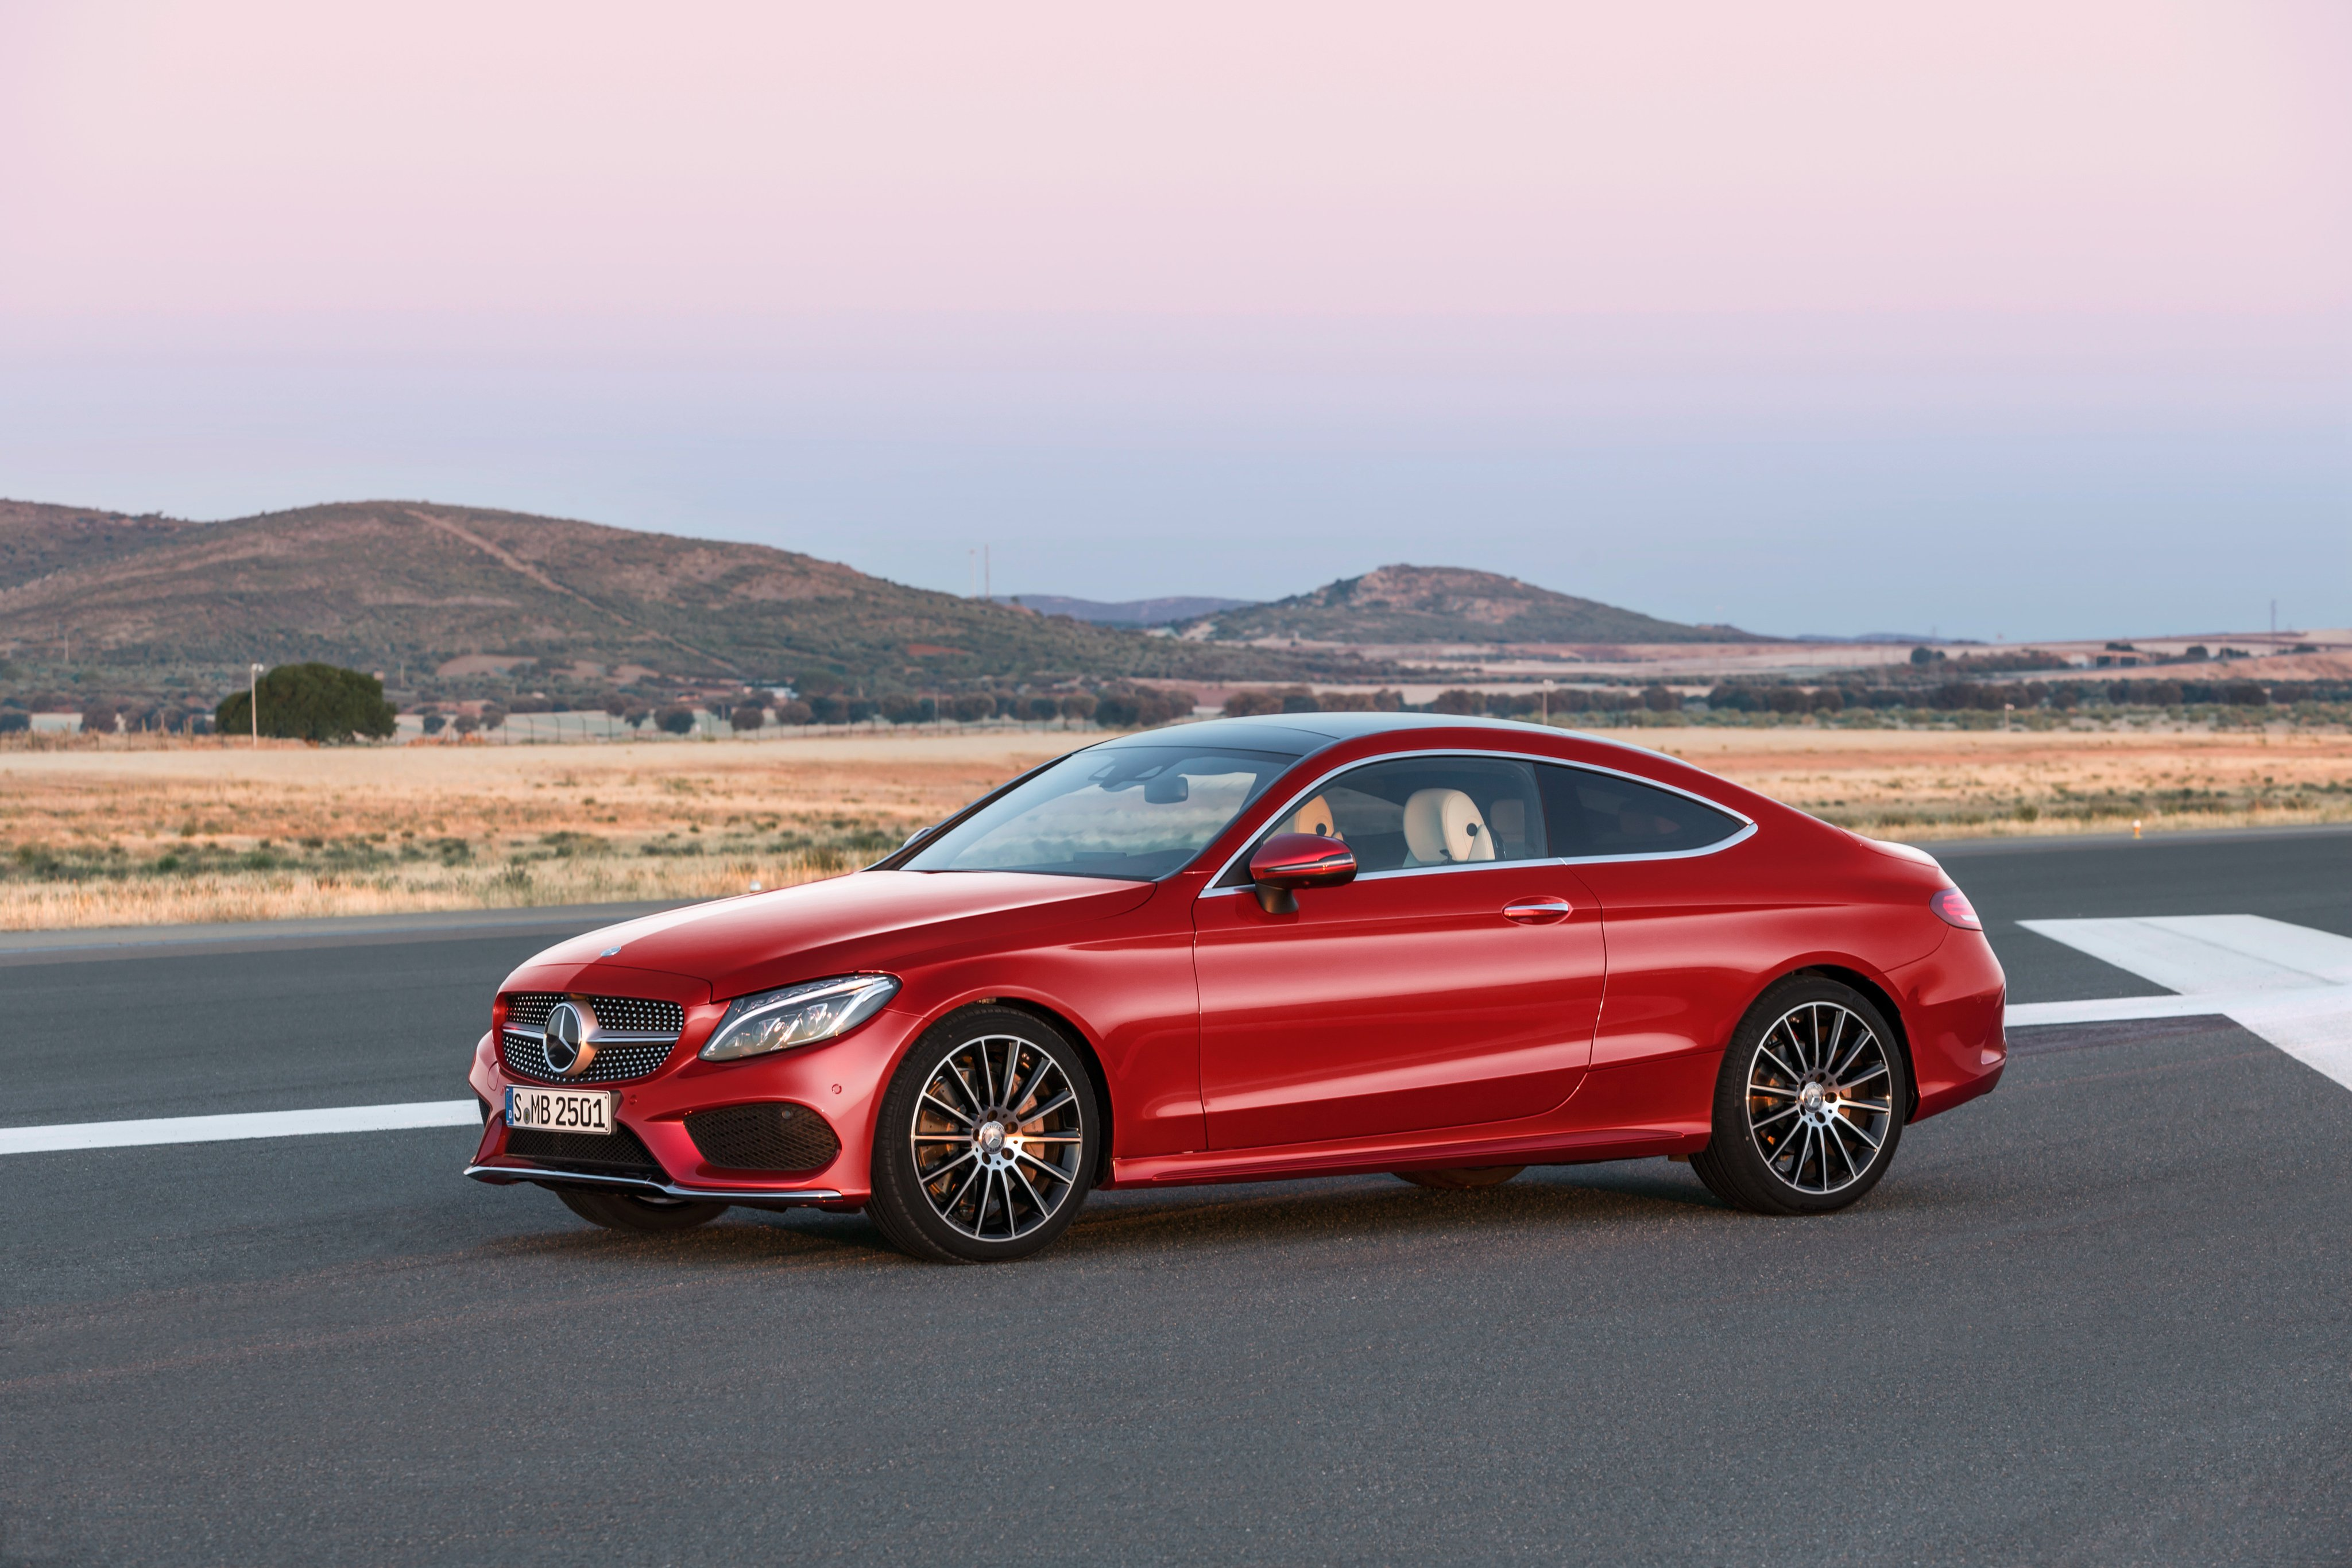 2017 Mercedes Benz C250 D 4MATIC Coupe AMG C205 Luxury